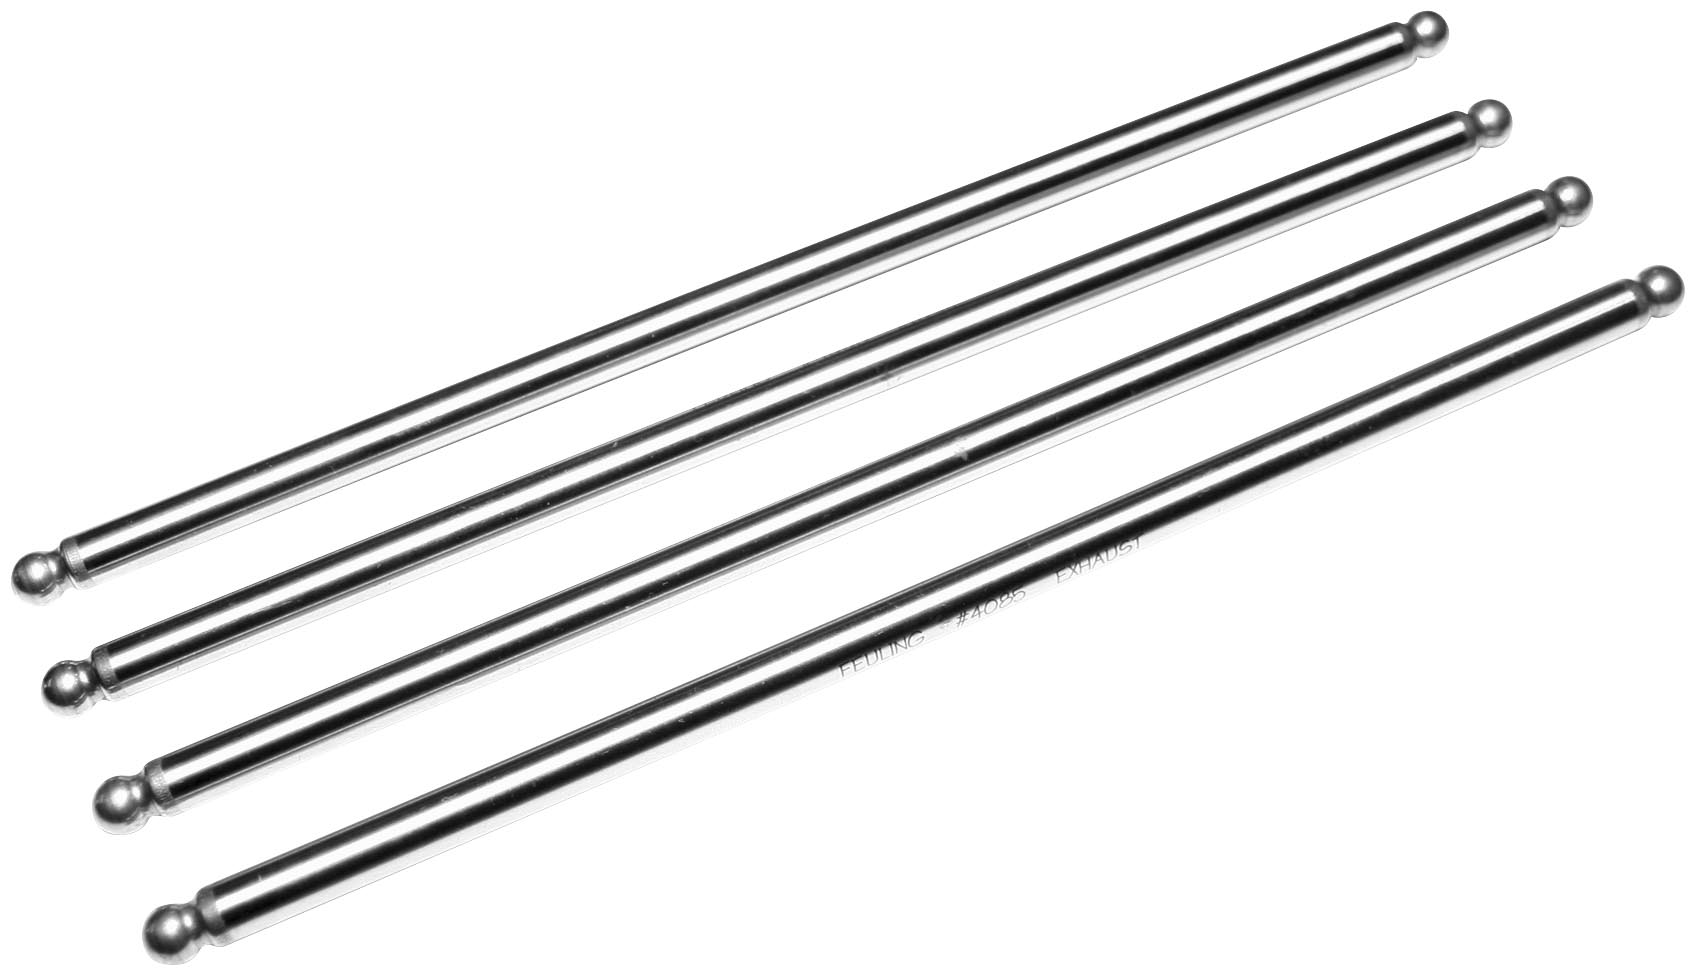 Feuling Hp Fixed Length Pushrods on P Cams Pushrods